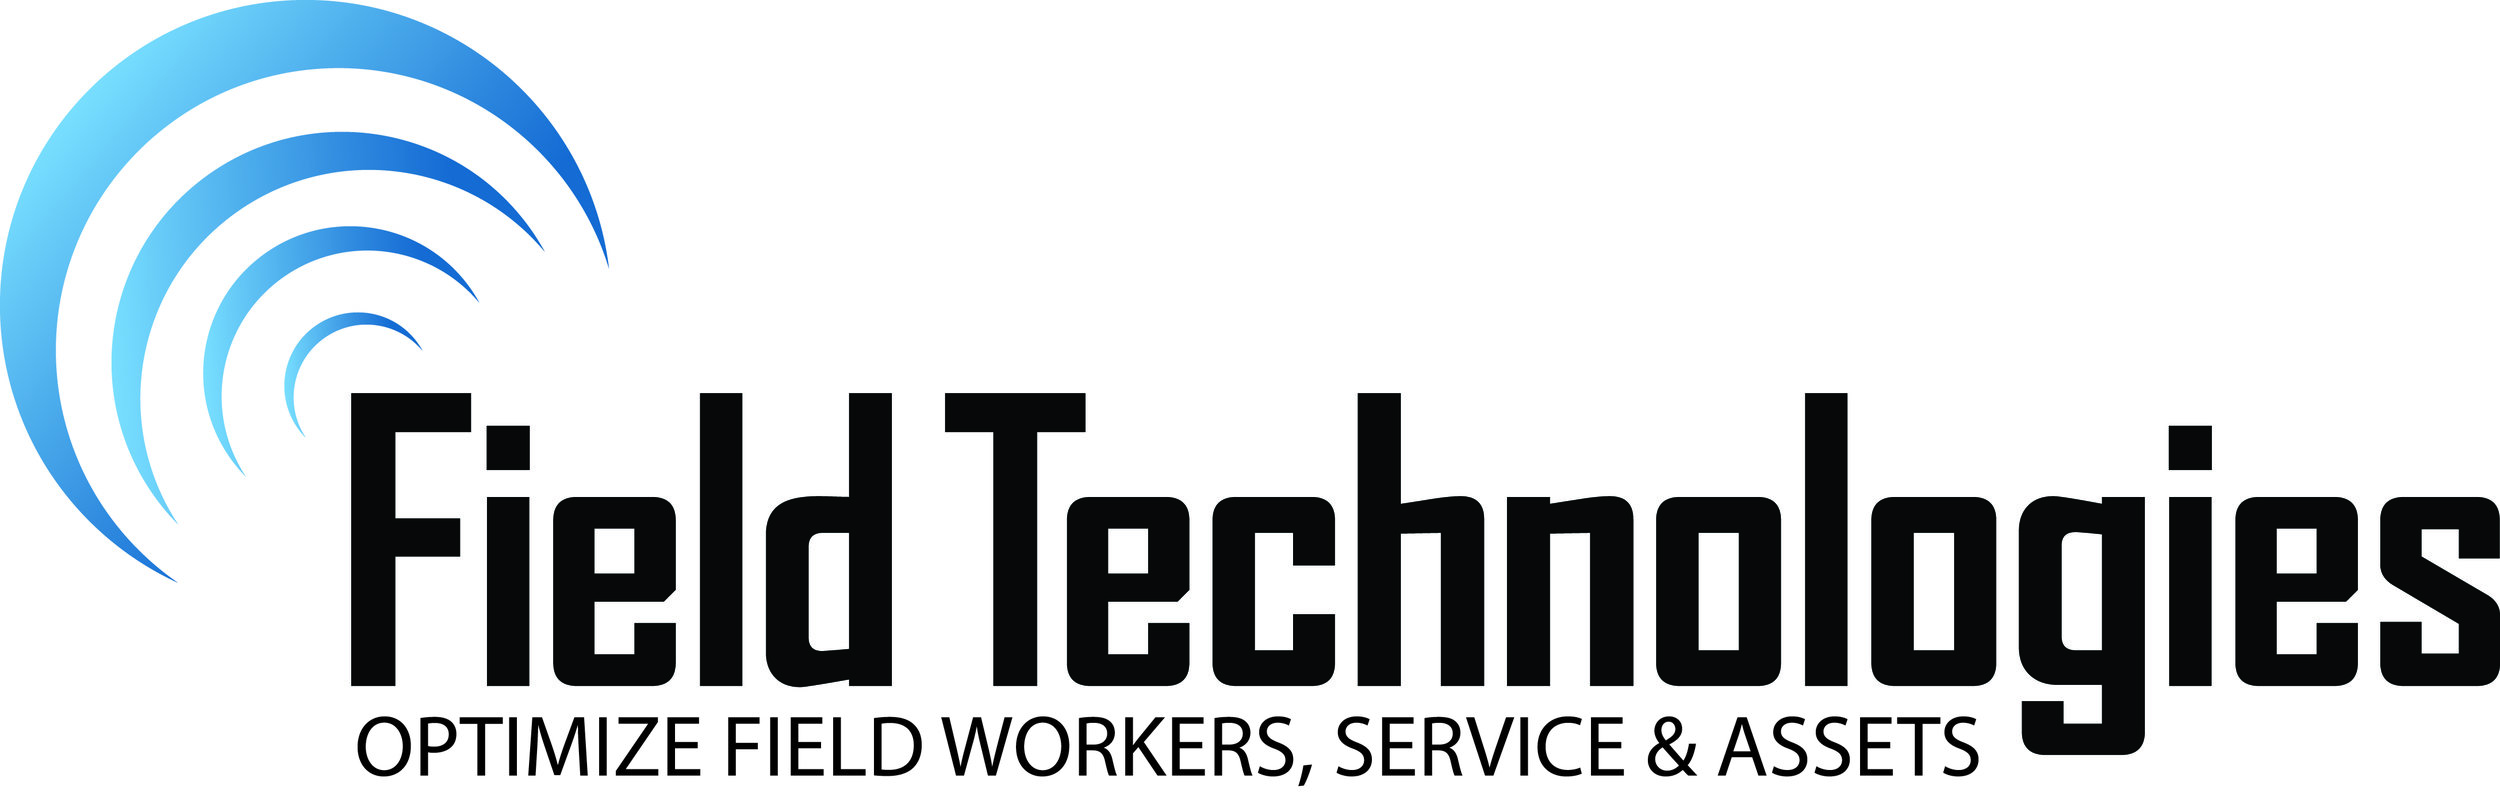 Field Techs_LOGO.jpg